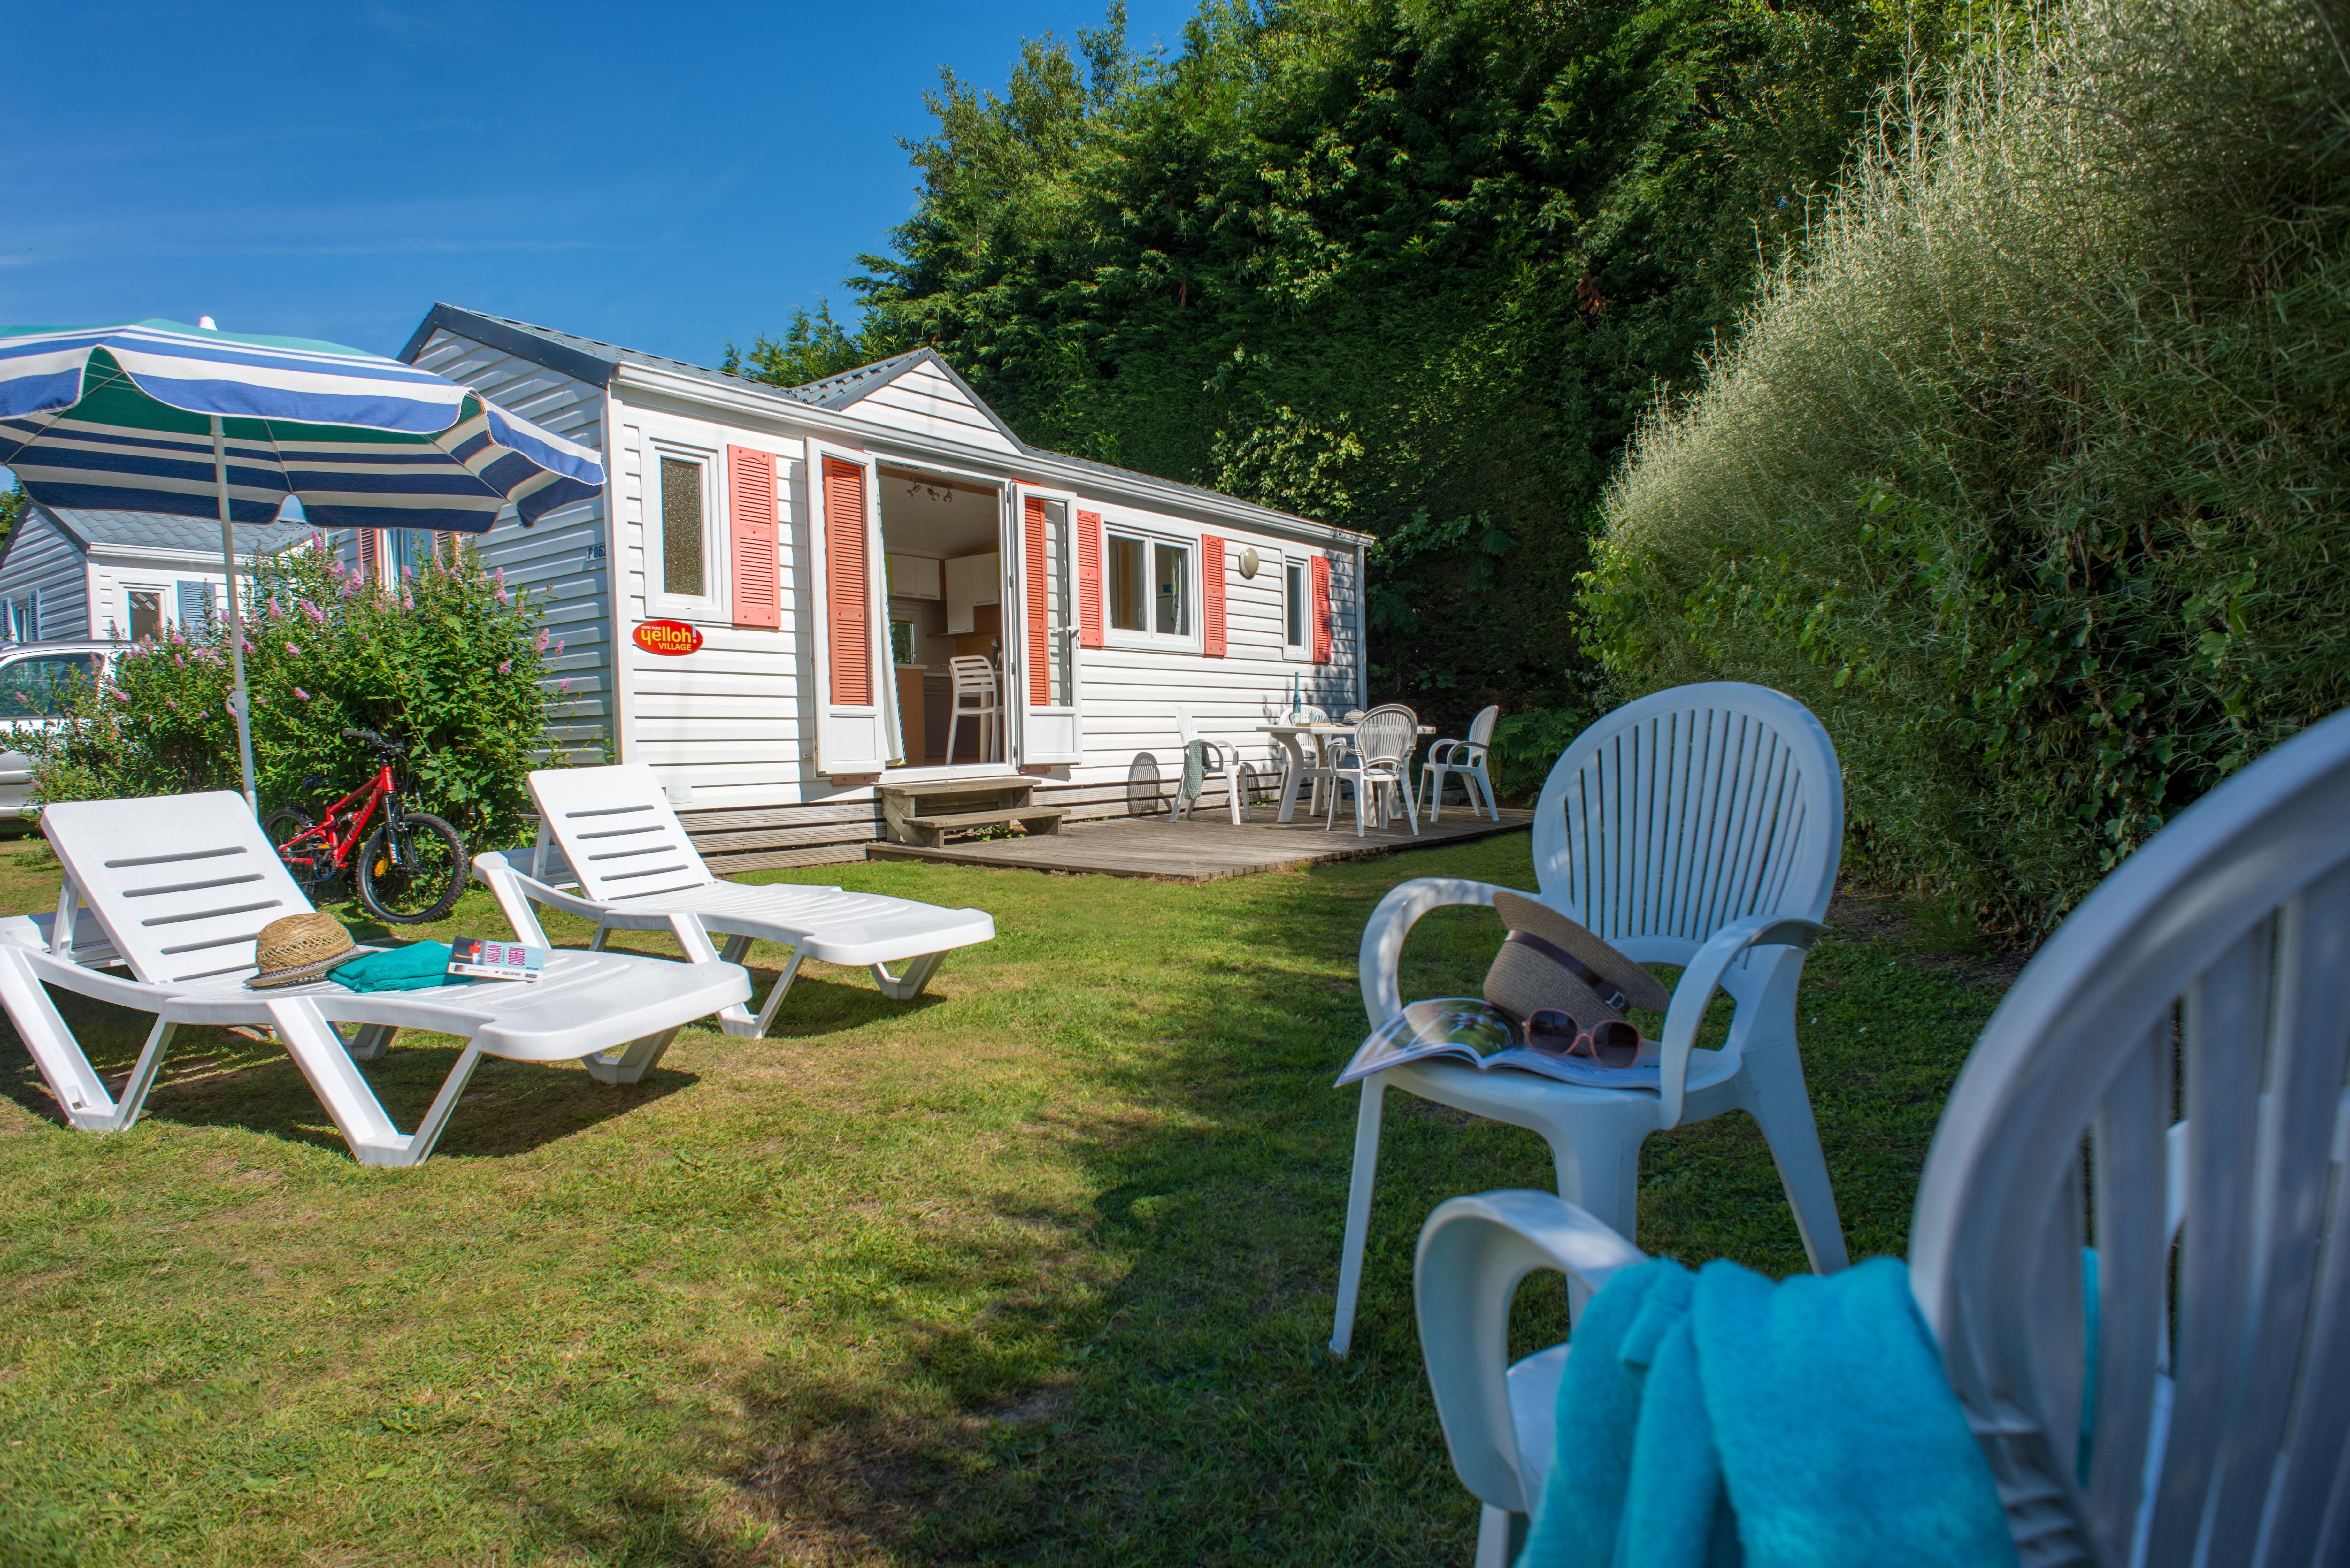 Huuraccommodaties - Cottage ** (2 Kamers) - YELLOH! VILLAGE - LE P'TIT BOIS